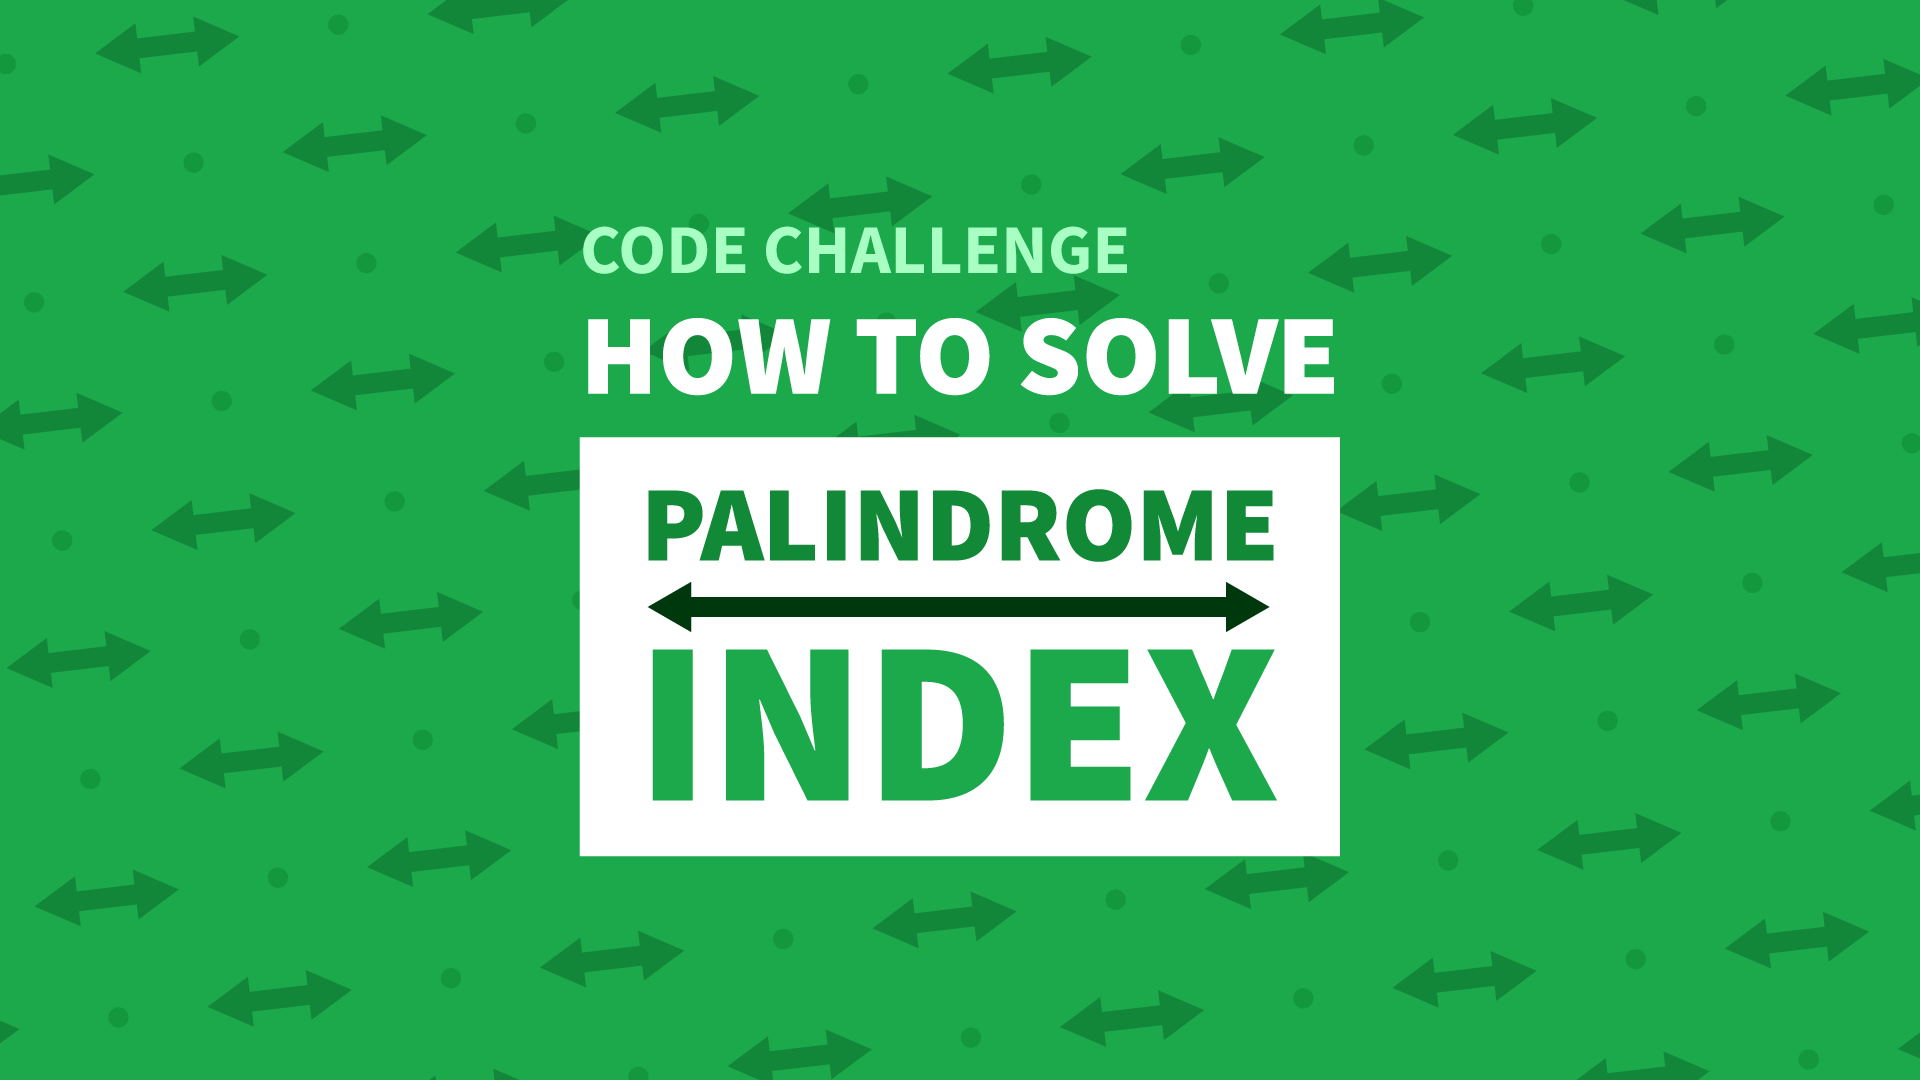 How To Solve The Palindrome Index Code Challenge - Manny